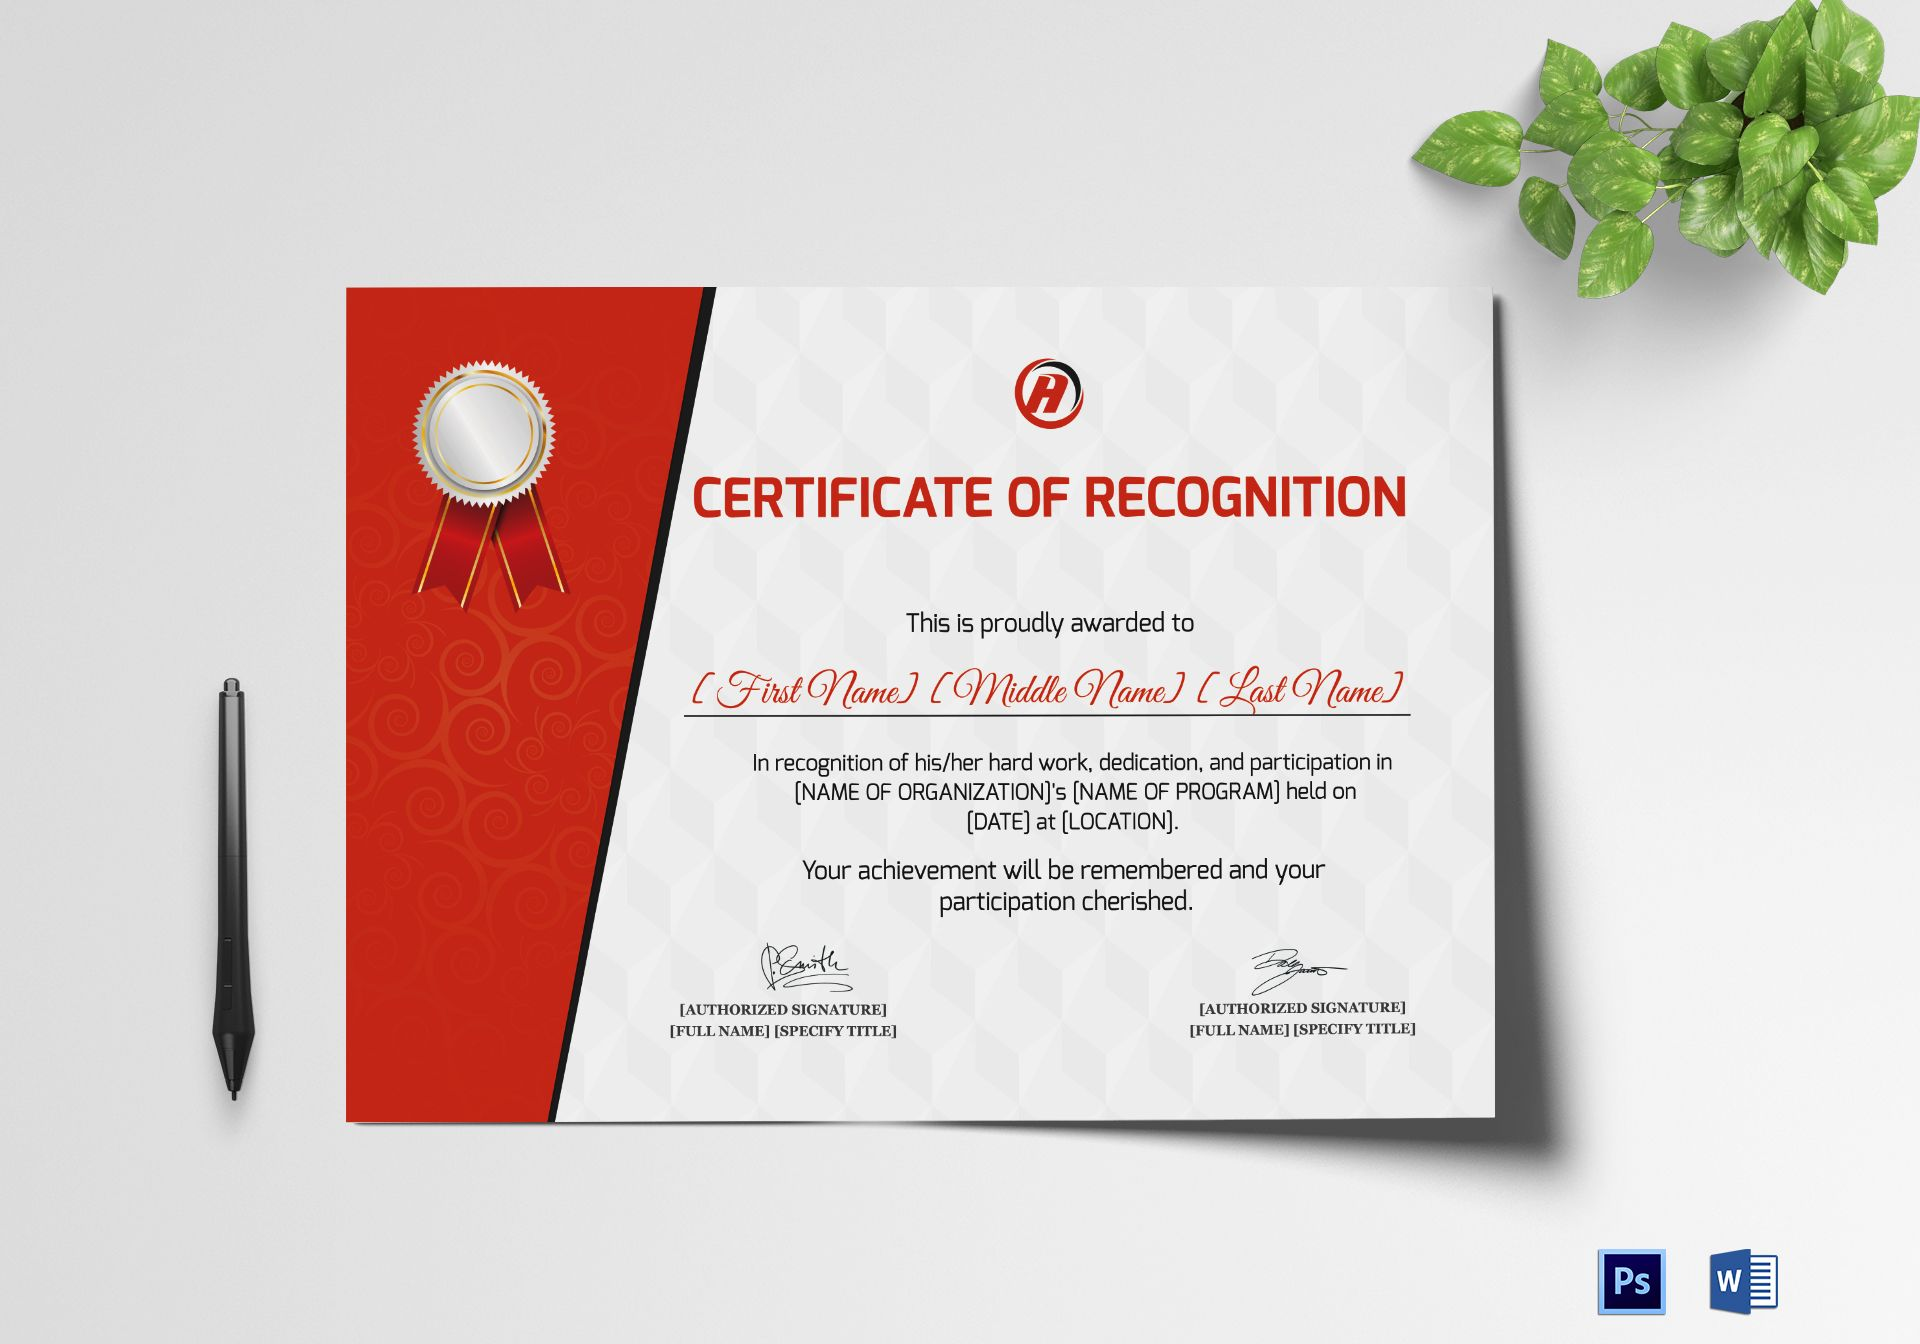 Certificate of Recognition for Dedication